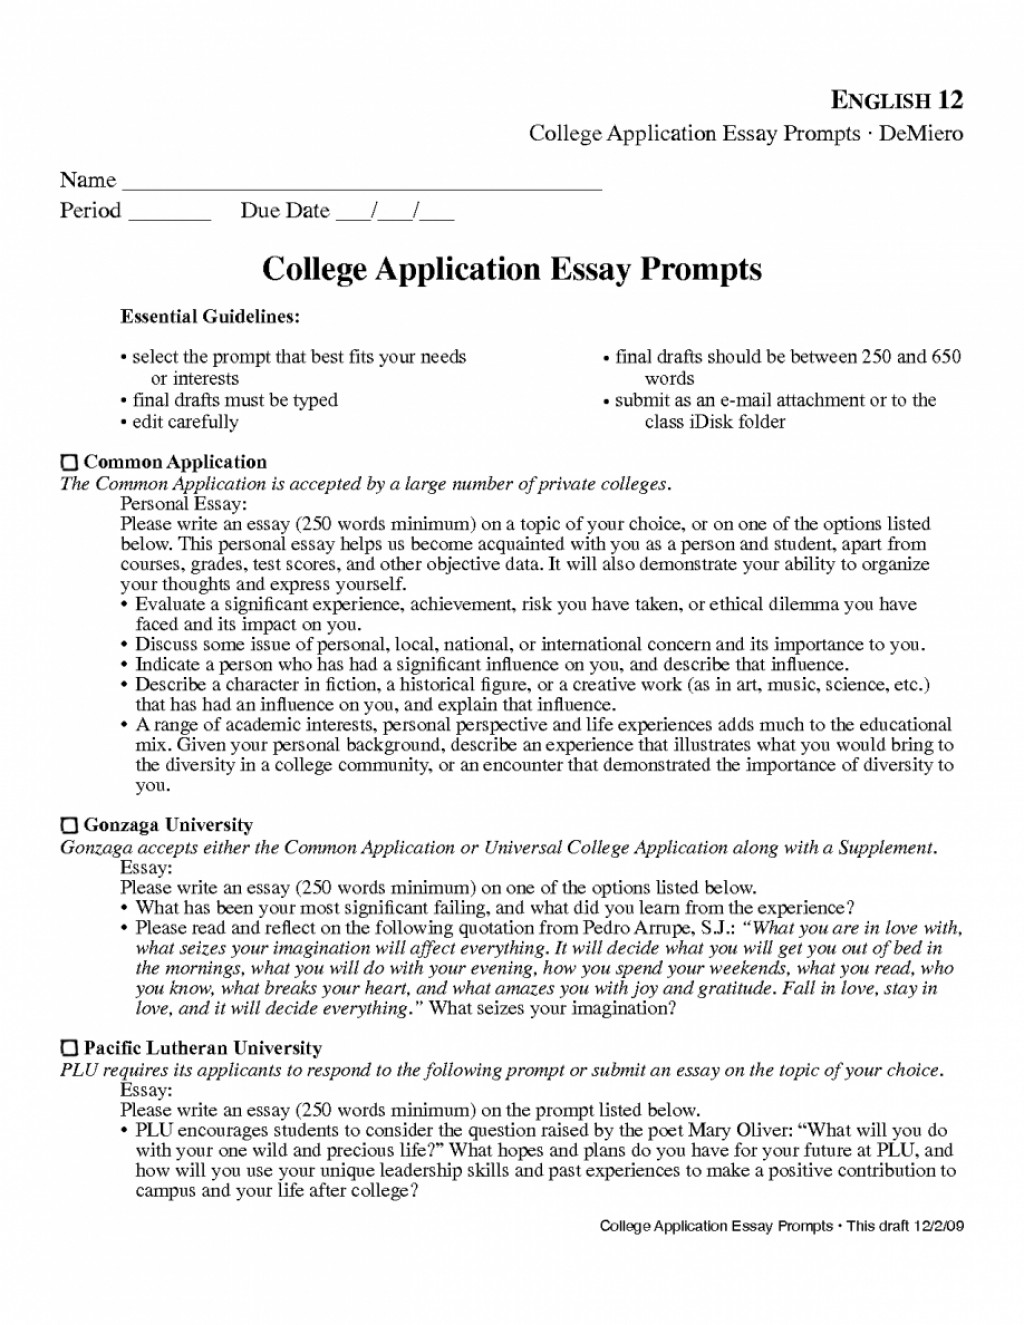 001 College Essay Prompts Writings And Essayss Of Application Questions Guve Securid Co With Rega Sample Impressive Texas 2018 Ideas Large